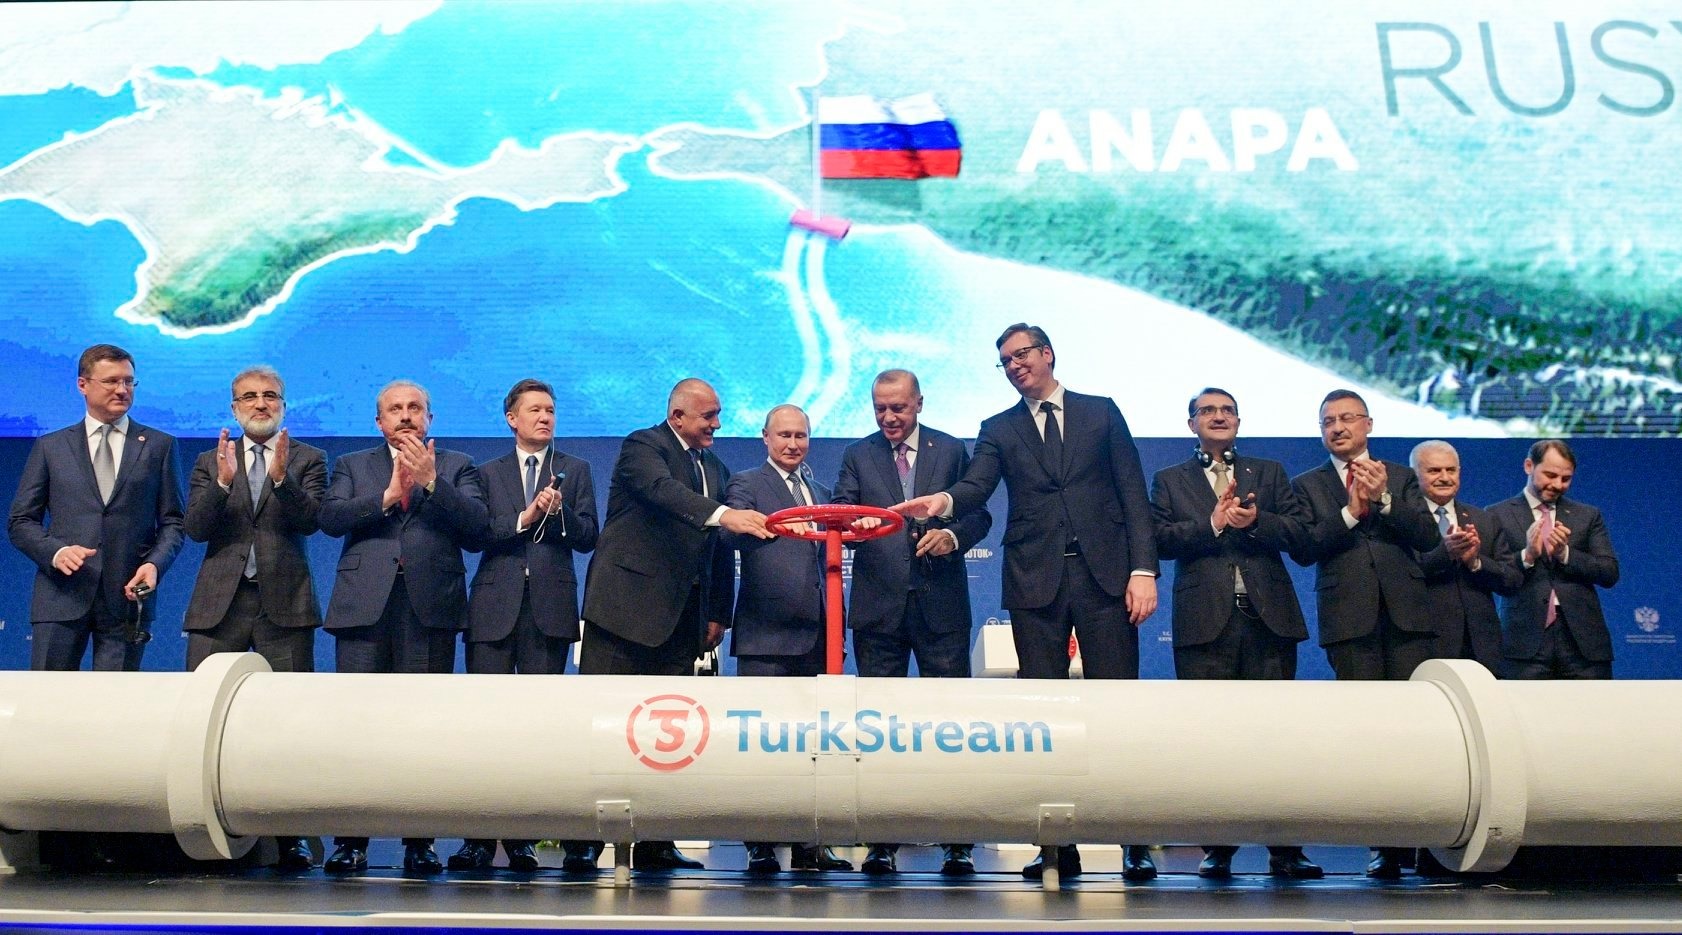 BNR: Russian Company To Build Part Of The TurkStream Pipeline In Bulgaria